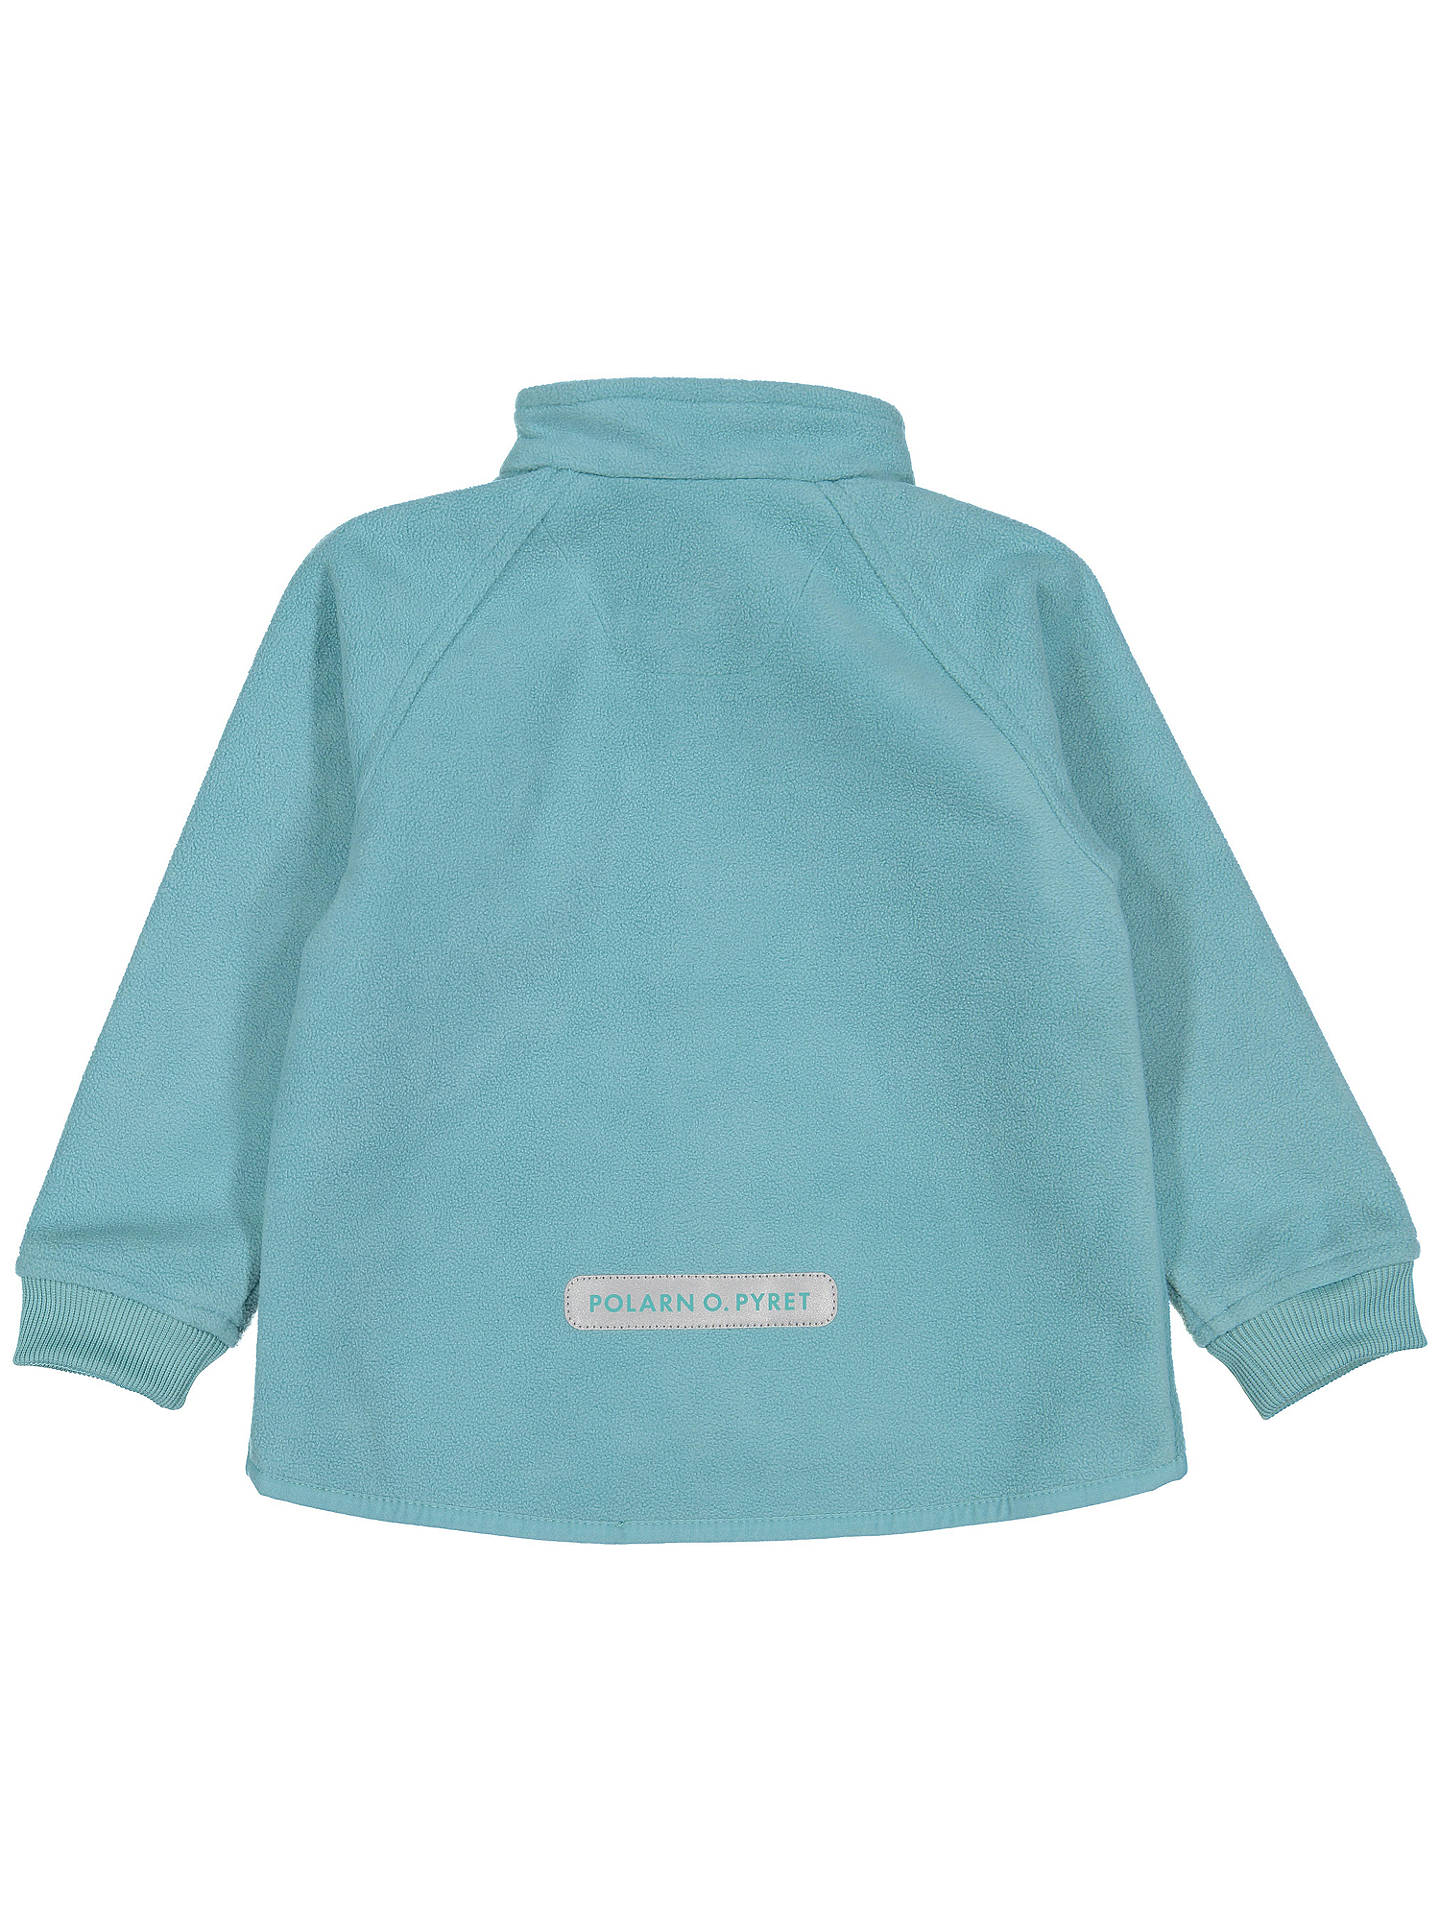 Buy Polarn O. Pyret Baby Waterproof Fleece Jacket, Green, 12-18 months Online at johnlewis.com